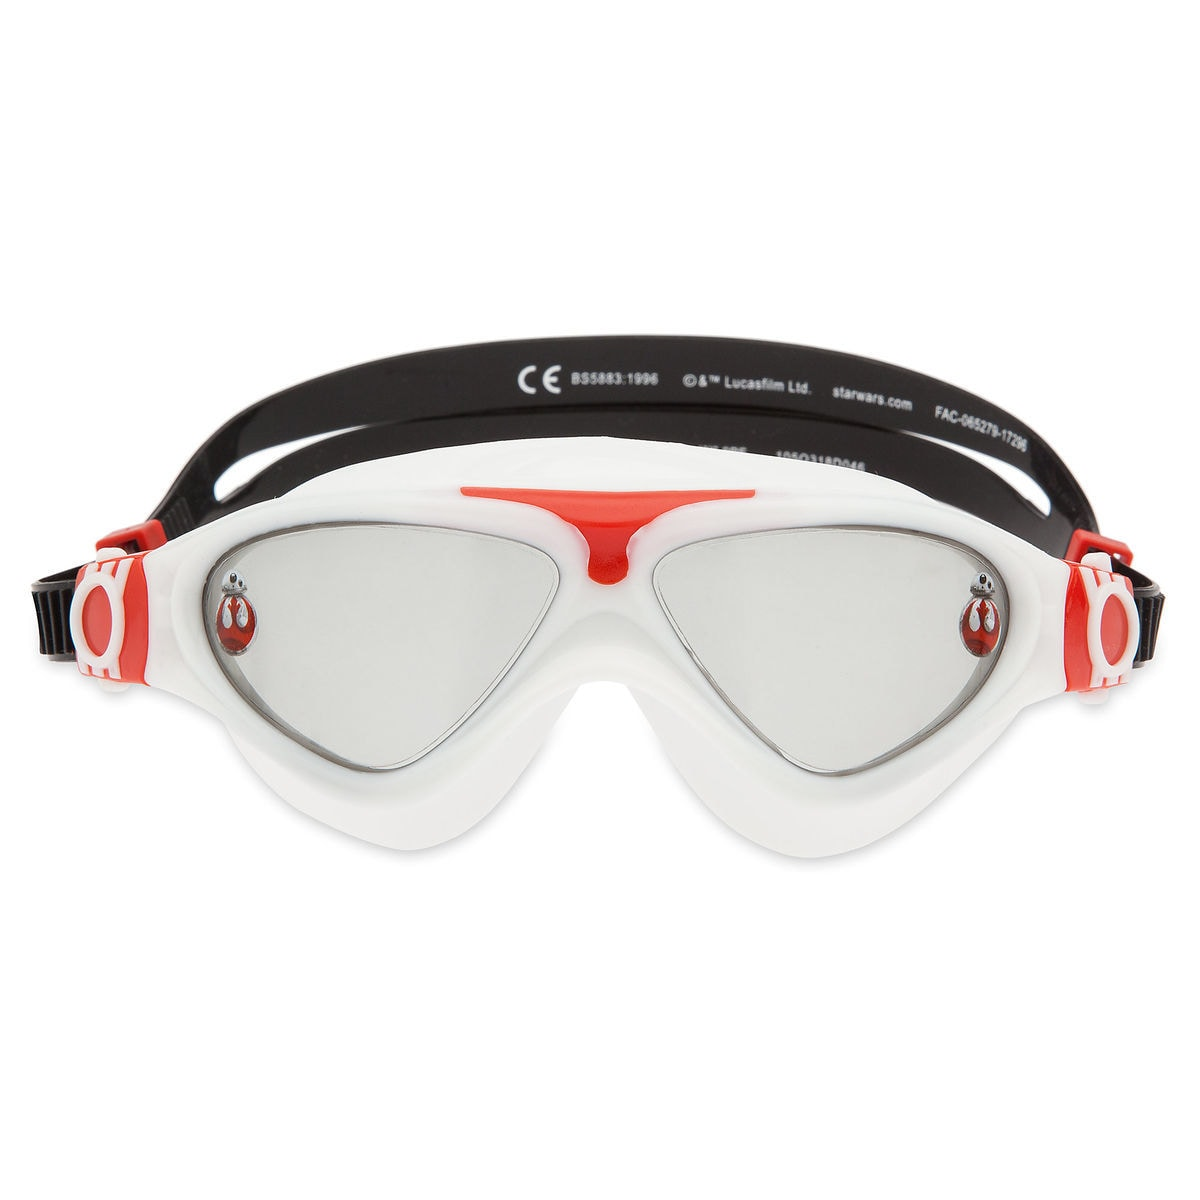 6cacd0758b1 Product Image of Star Wars Swim Goggles for Kids   1